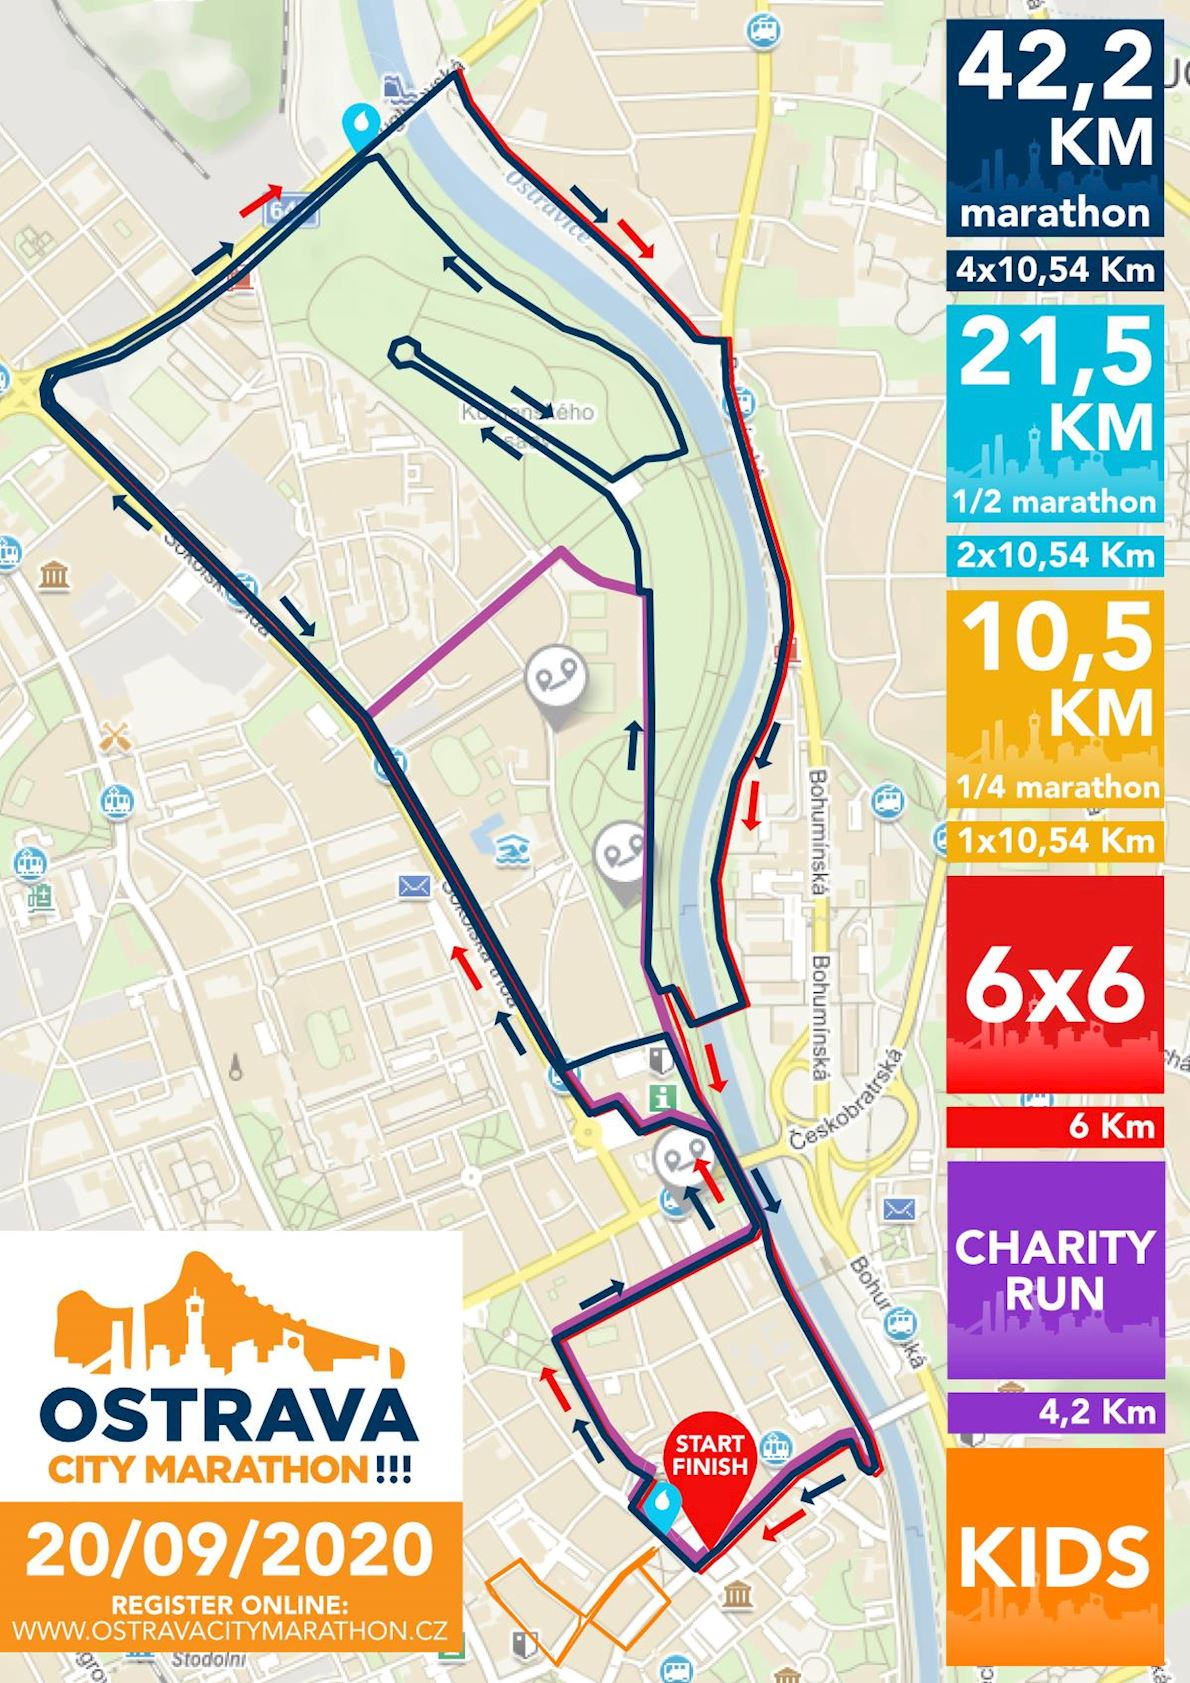 Ostrava City Marathon!!! Route Map